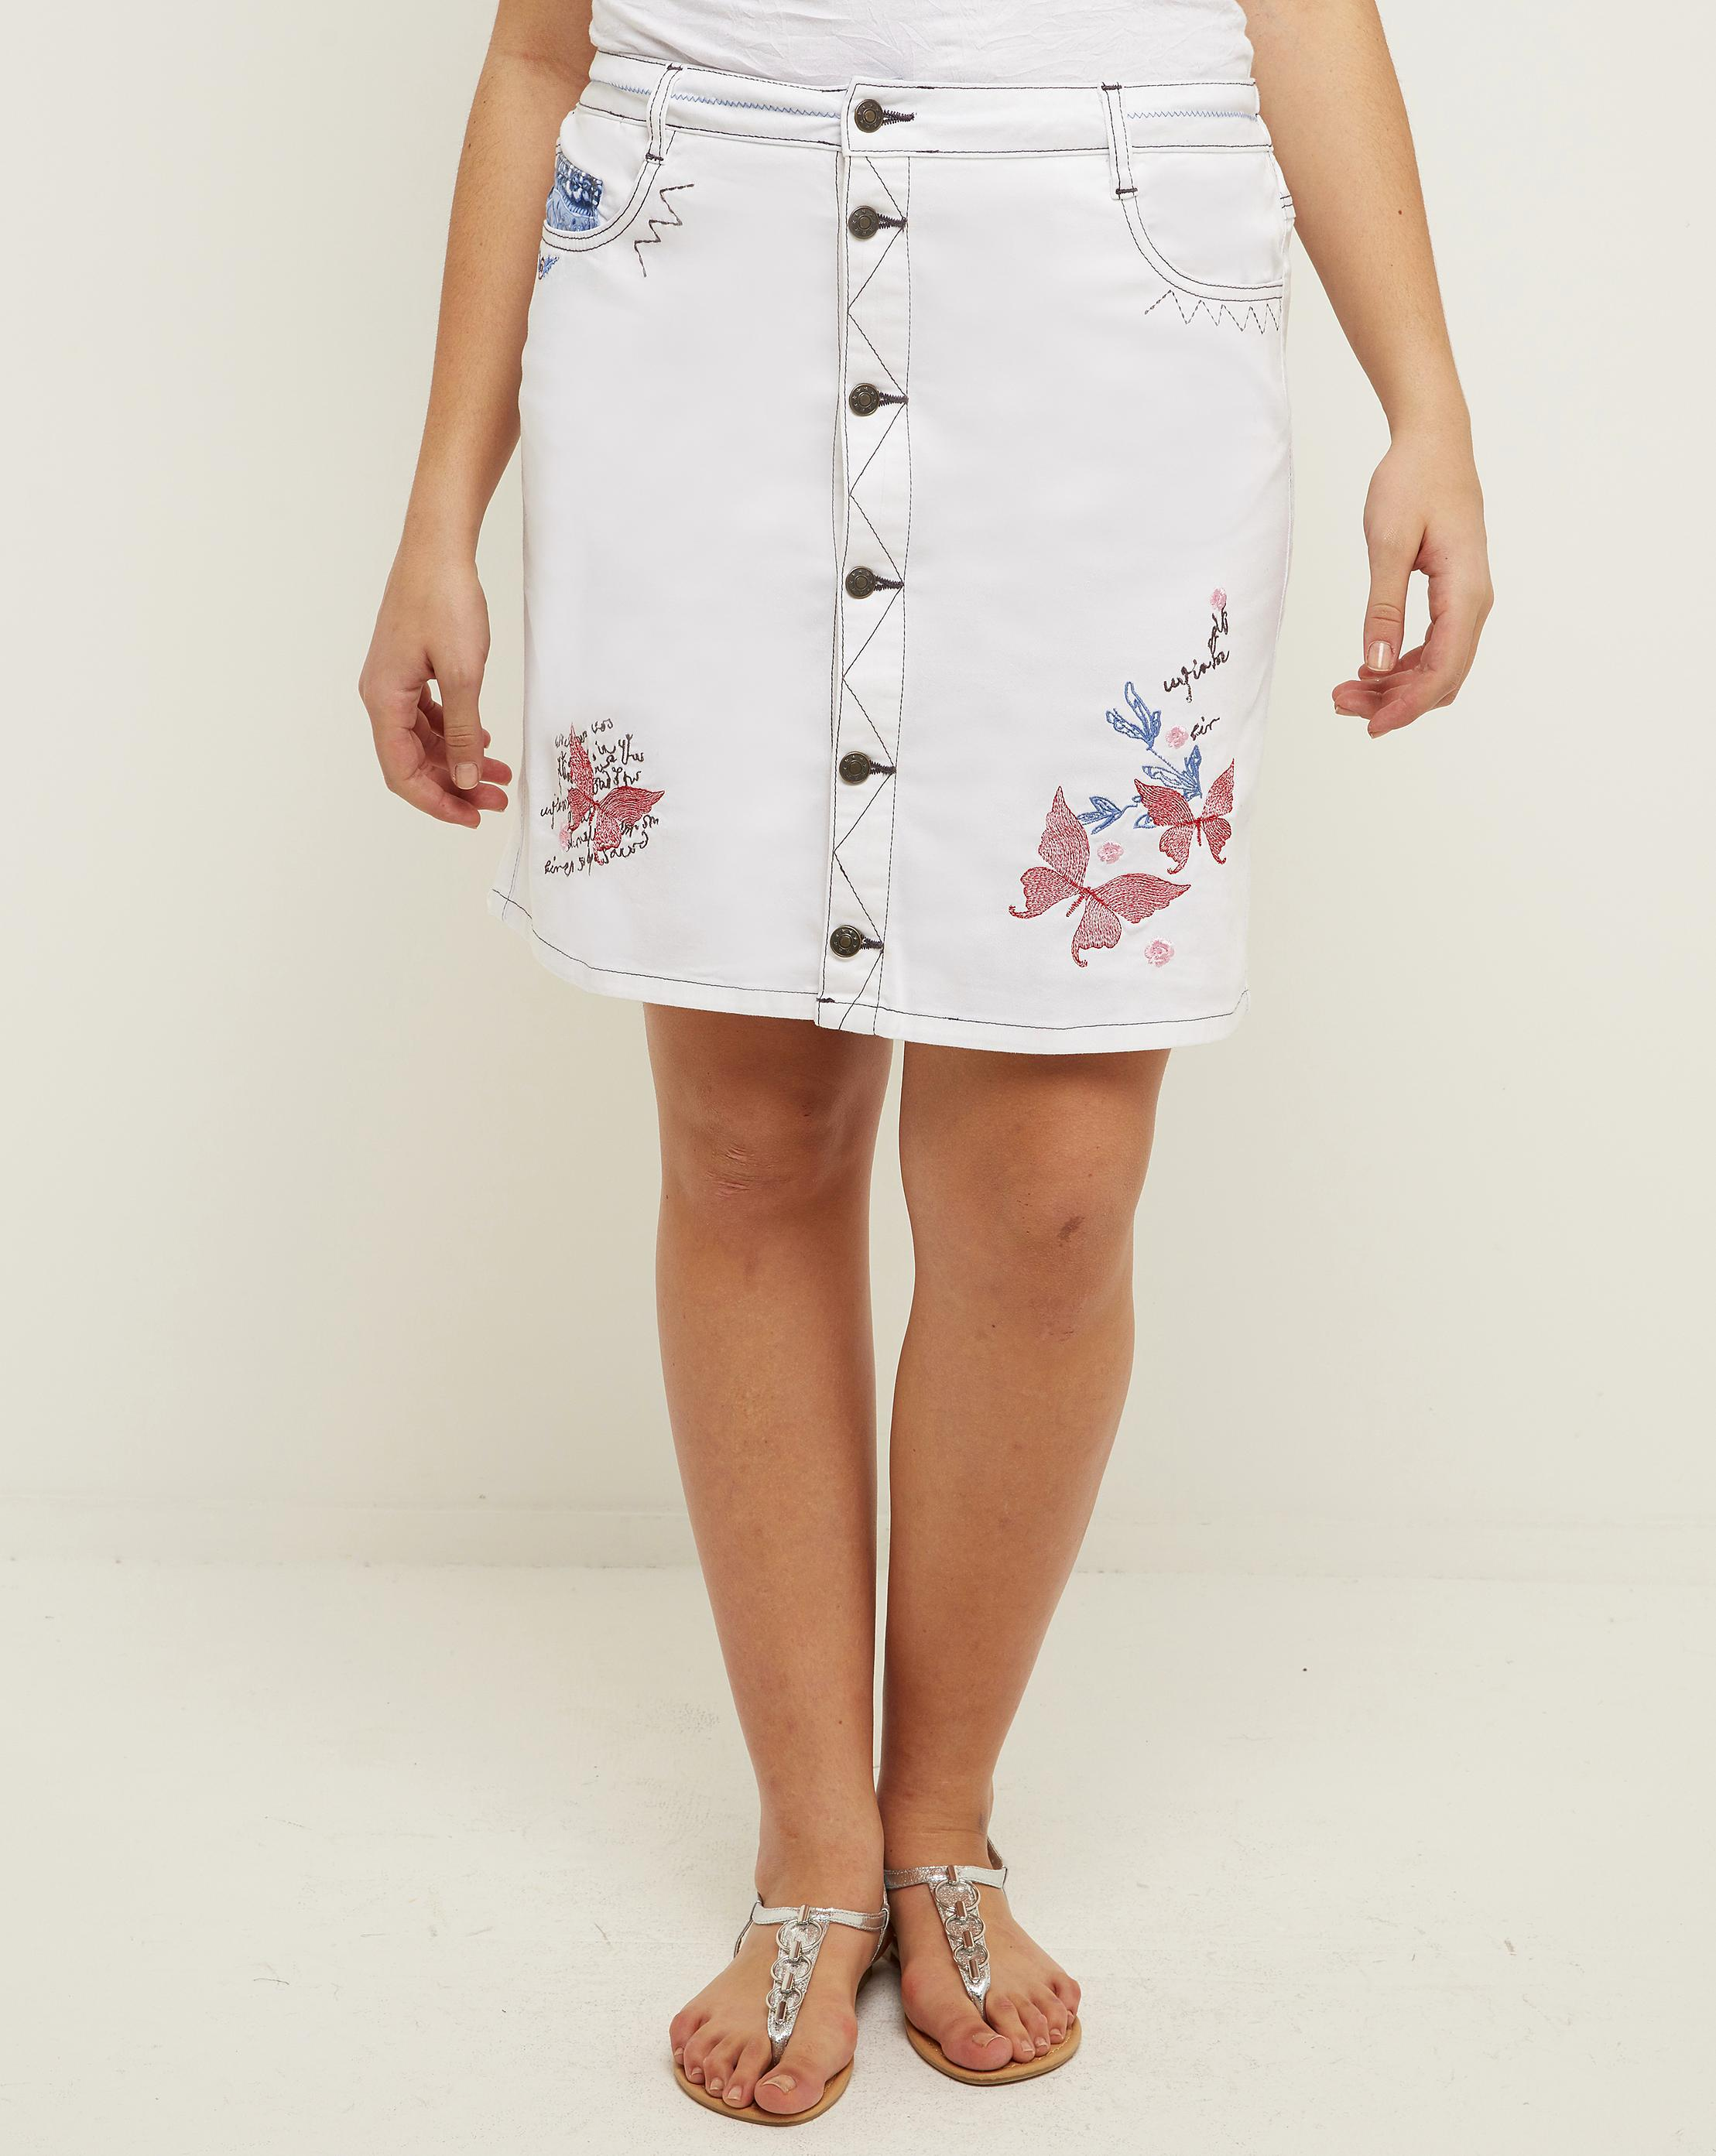 b21beef55c Lyst - Simply Be Joe Browns Applique Skirt in White